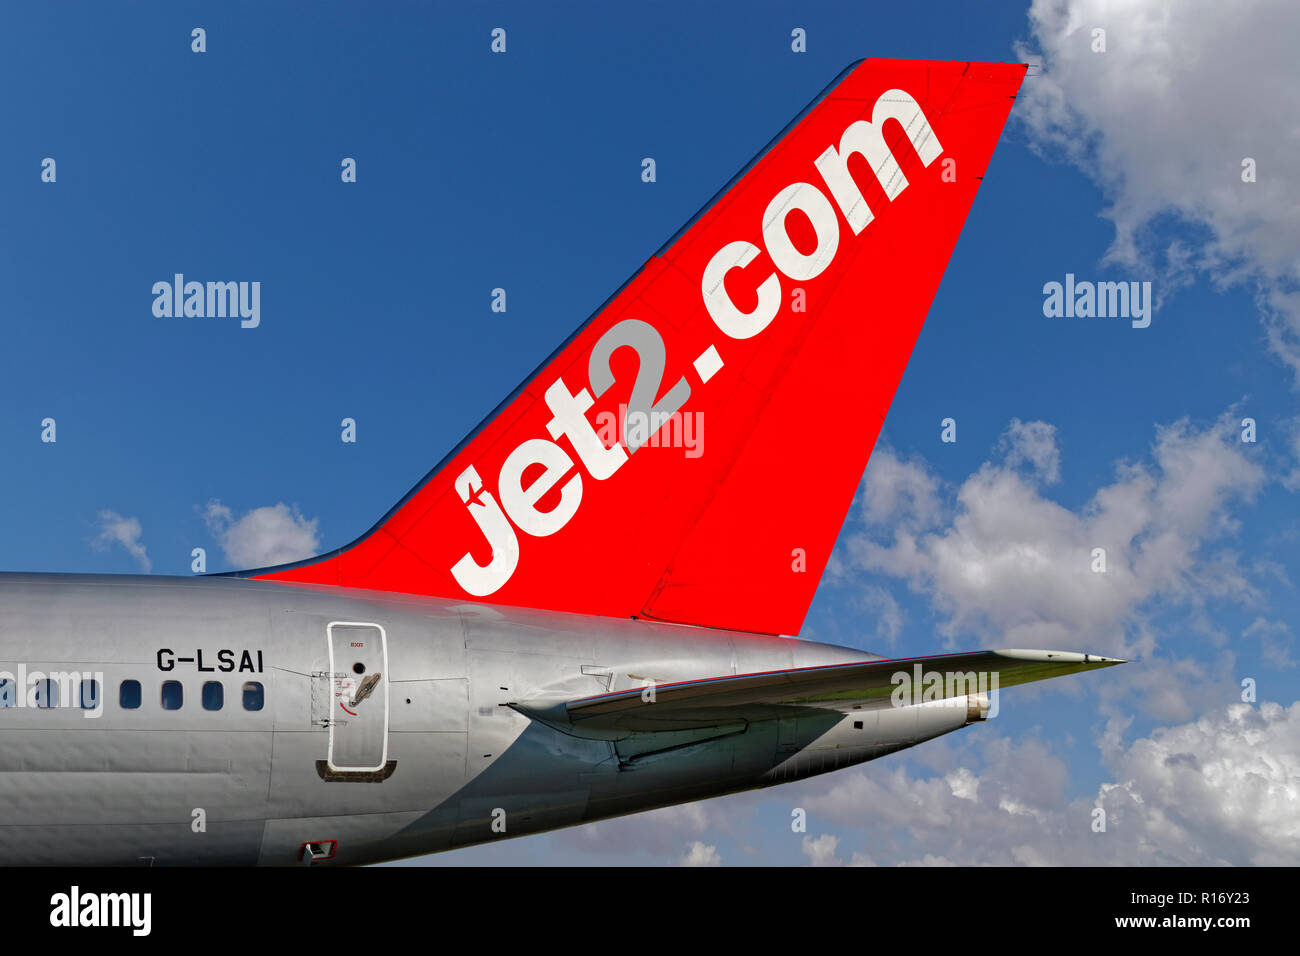 Jet2.Com dérive d'aéronefs. Photo Stock